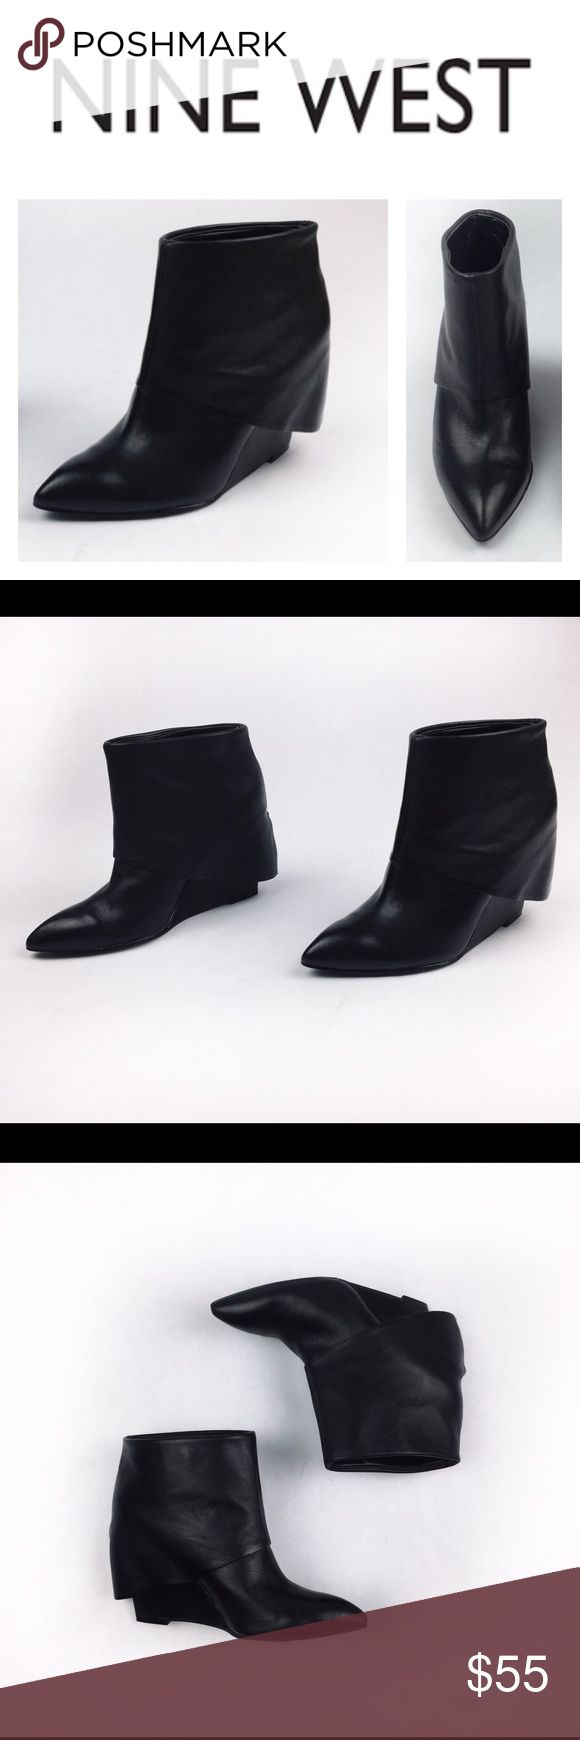 NINE WEST LEATHER ANKLE BOOTS W SLEEVE DETAIL SZ6M Divine and super chic Nine West black leather ankle boot with sleeve detail in sz6M. Brand new, never worn, excellent look! Comes without a box so might have some handling signs please look at pics. These are perfect to wear with all types of jeans or some boho chic dress! Love them? Make an offer! Questions? Ask me 💖😉 Nine West Shoes Ankle Boots & Booties